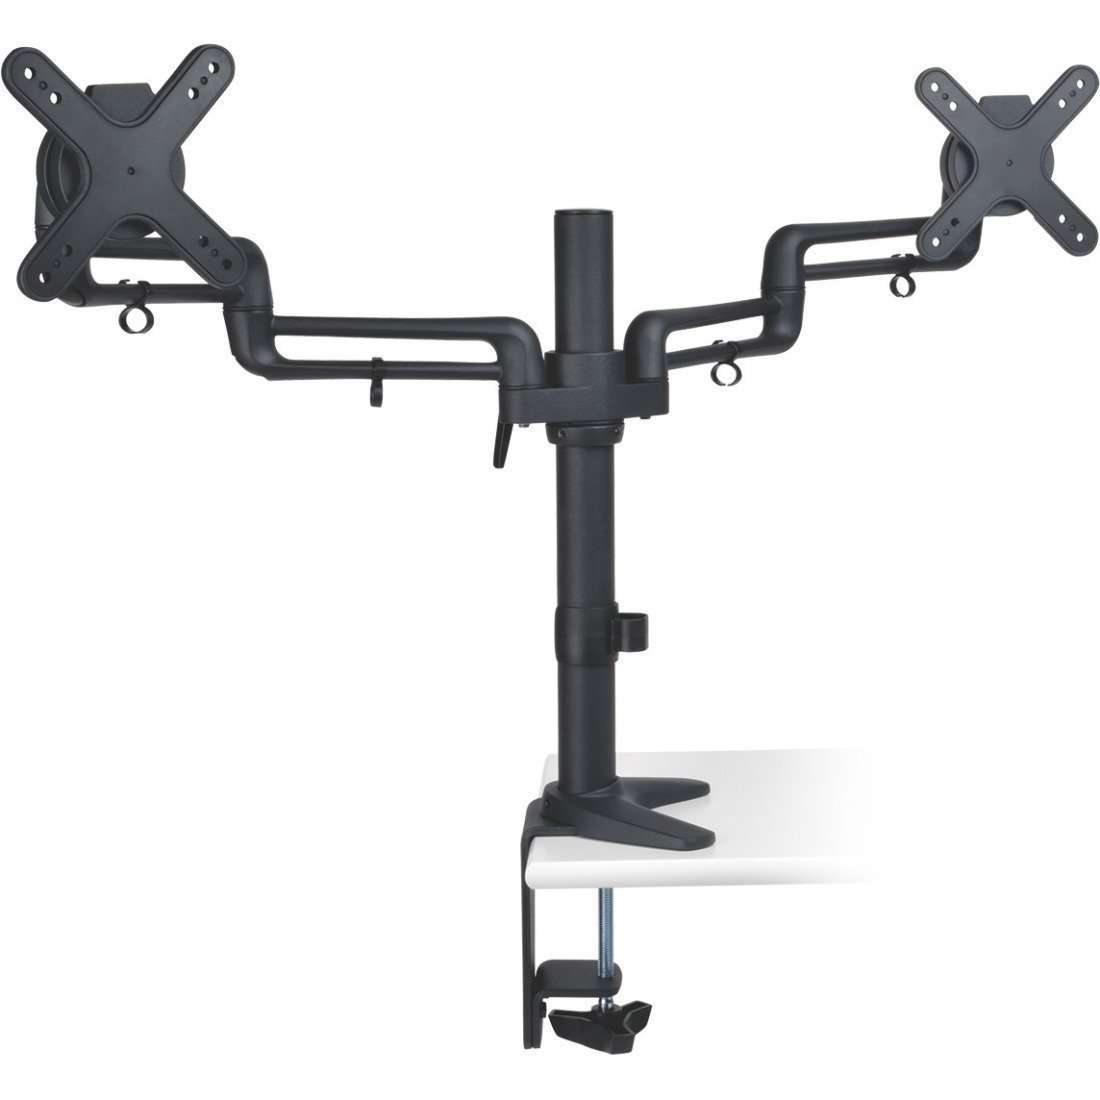 Dual Display Mount 13-27